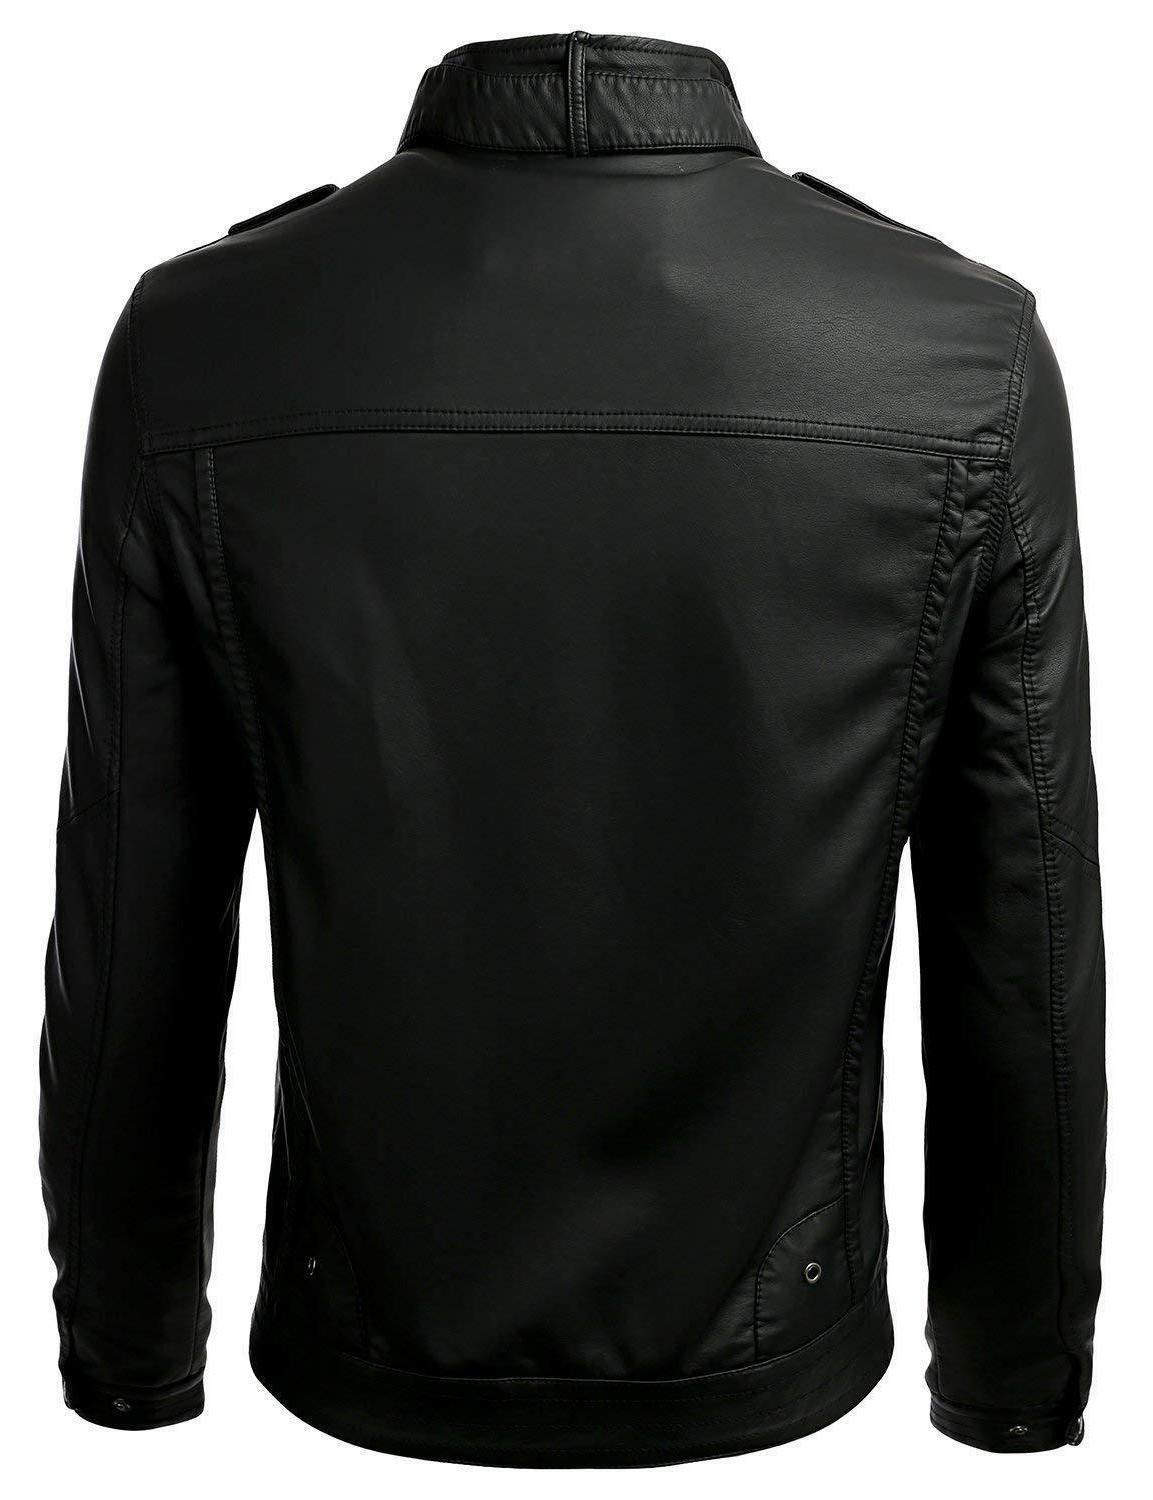 IDARBI Long Premium Stand Collar Up Leather Jacket